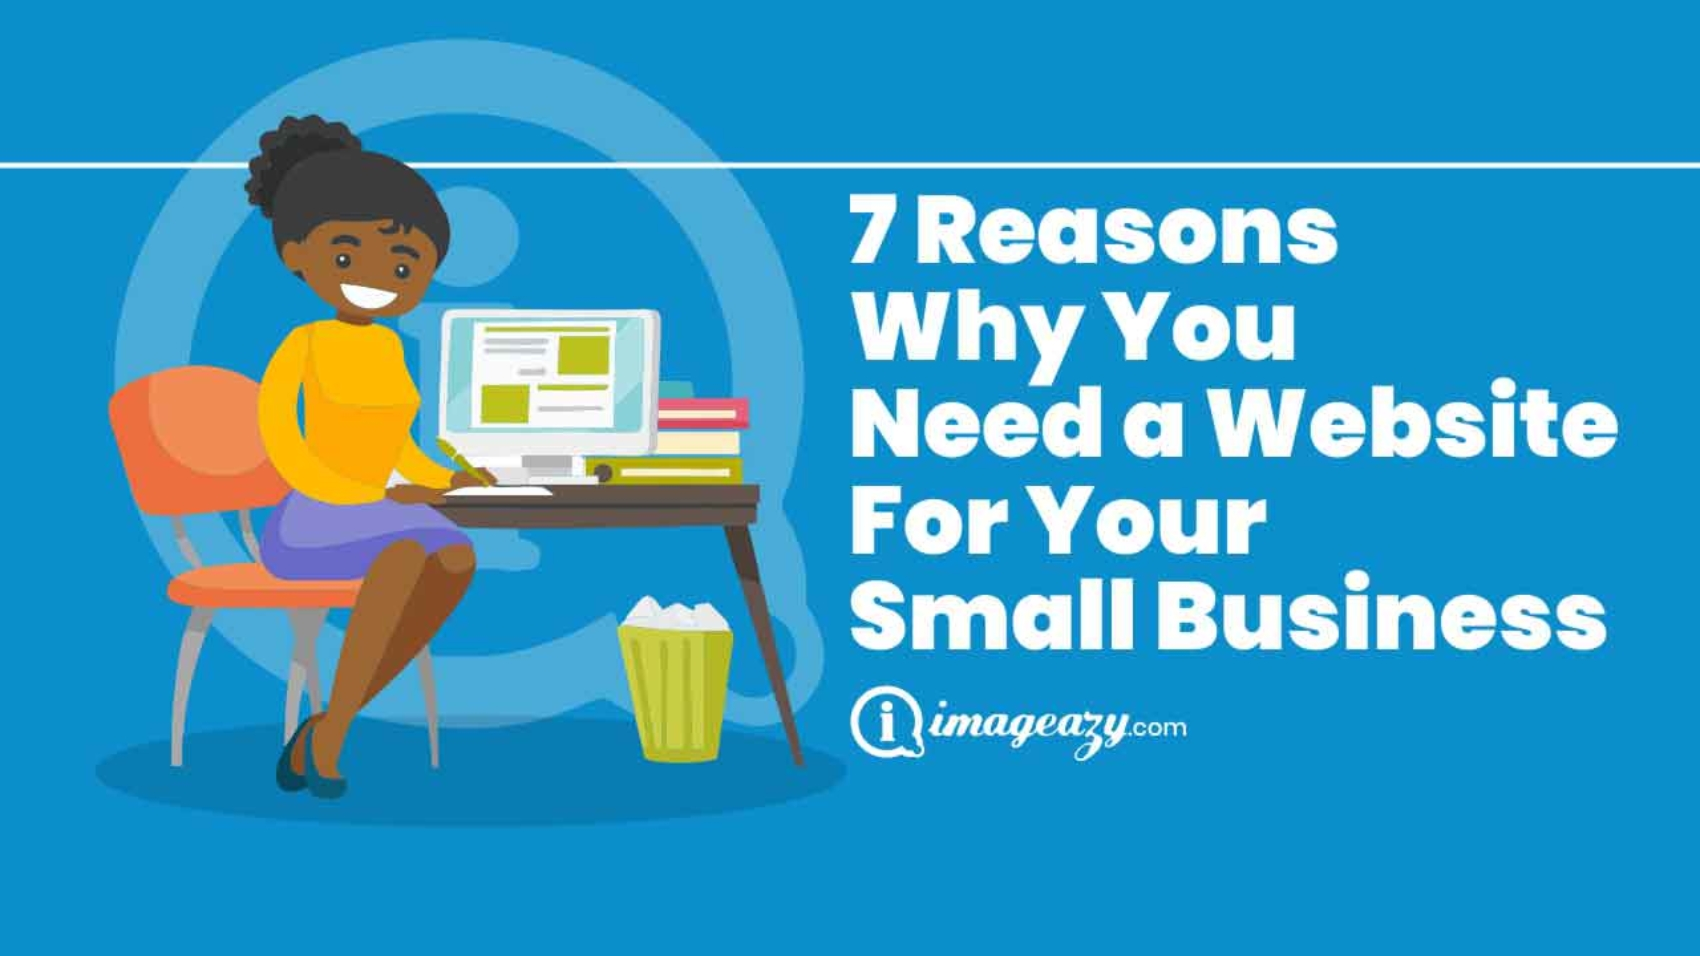 7 reasons you need a website for your small business